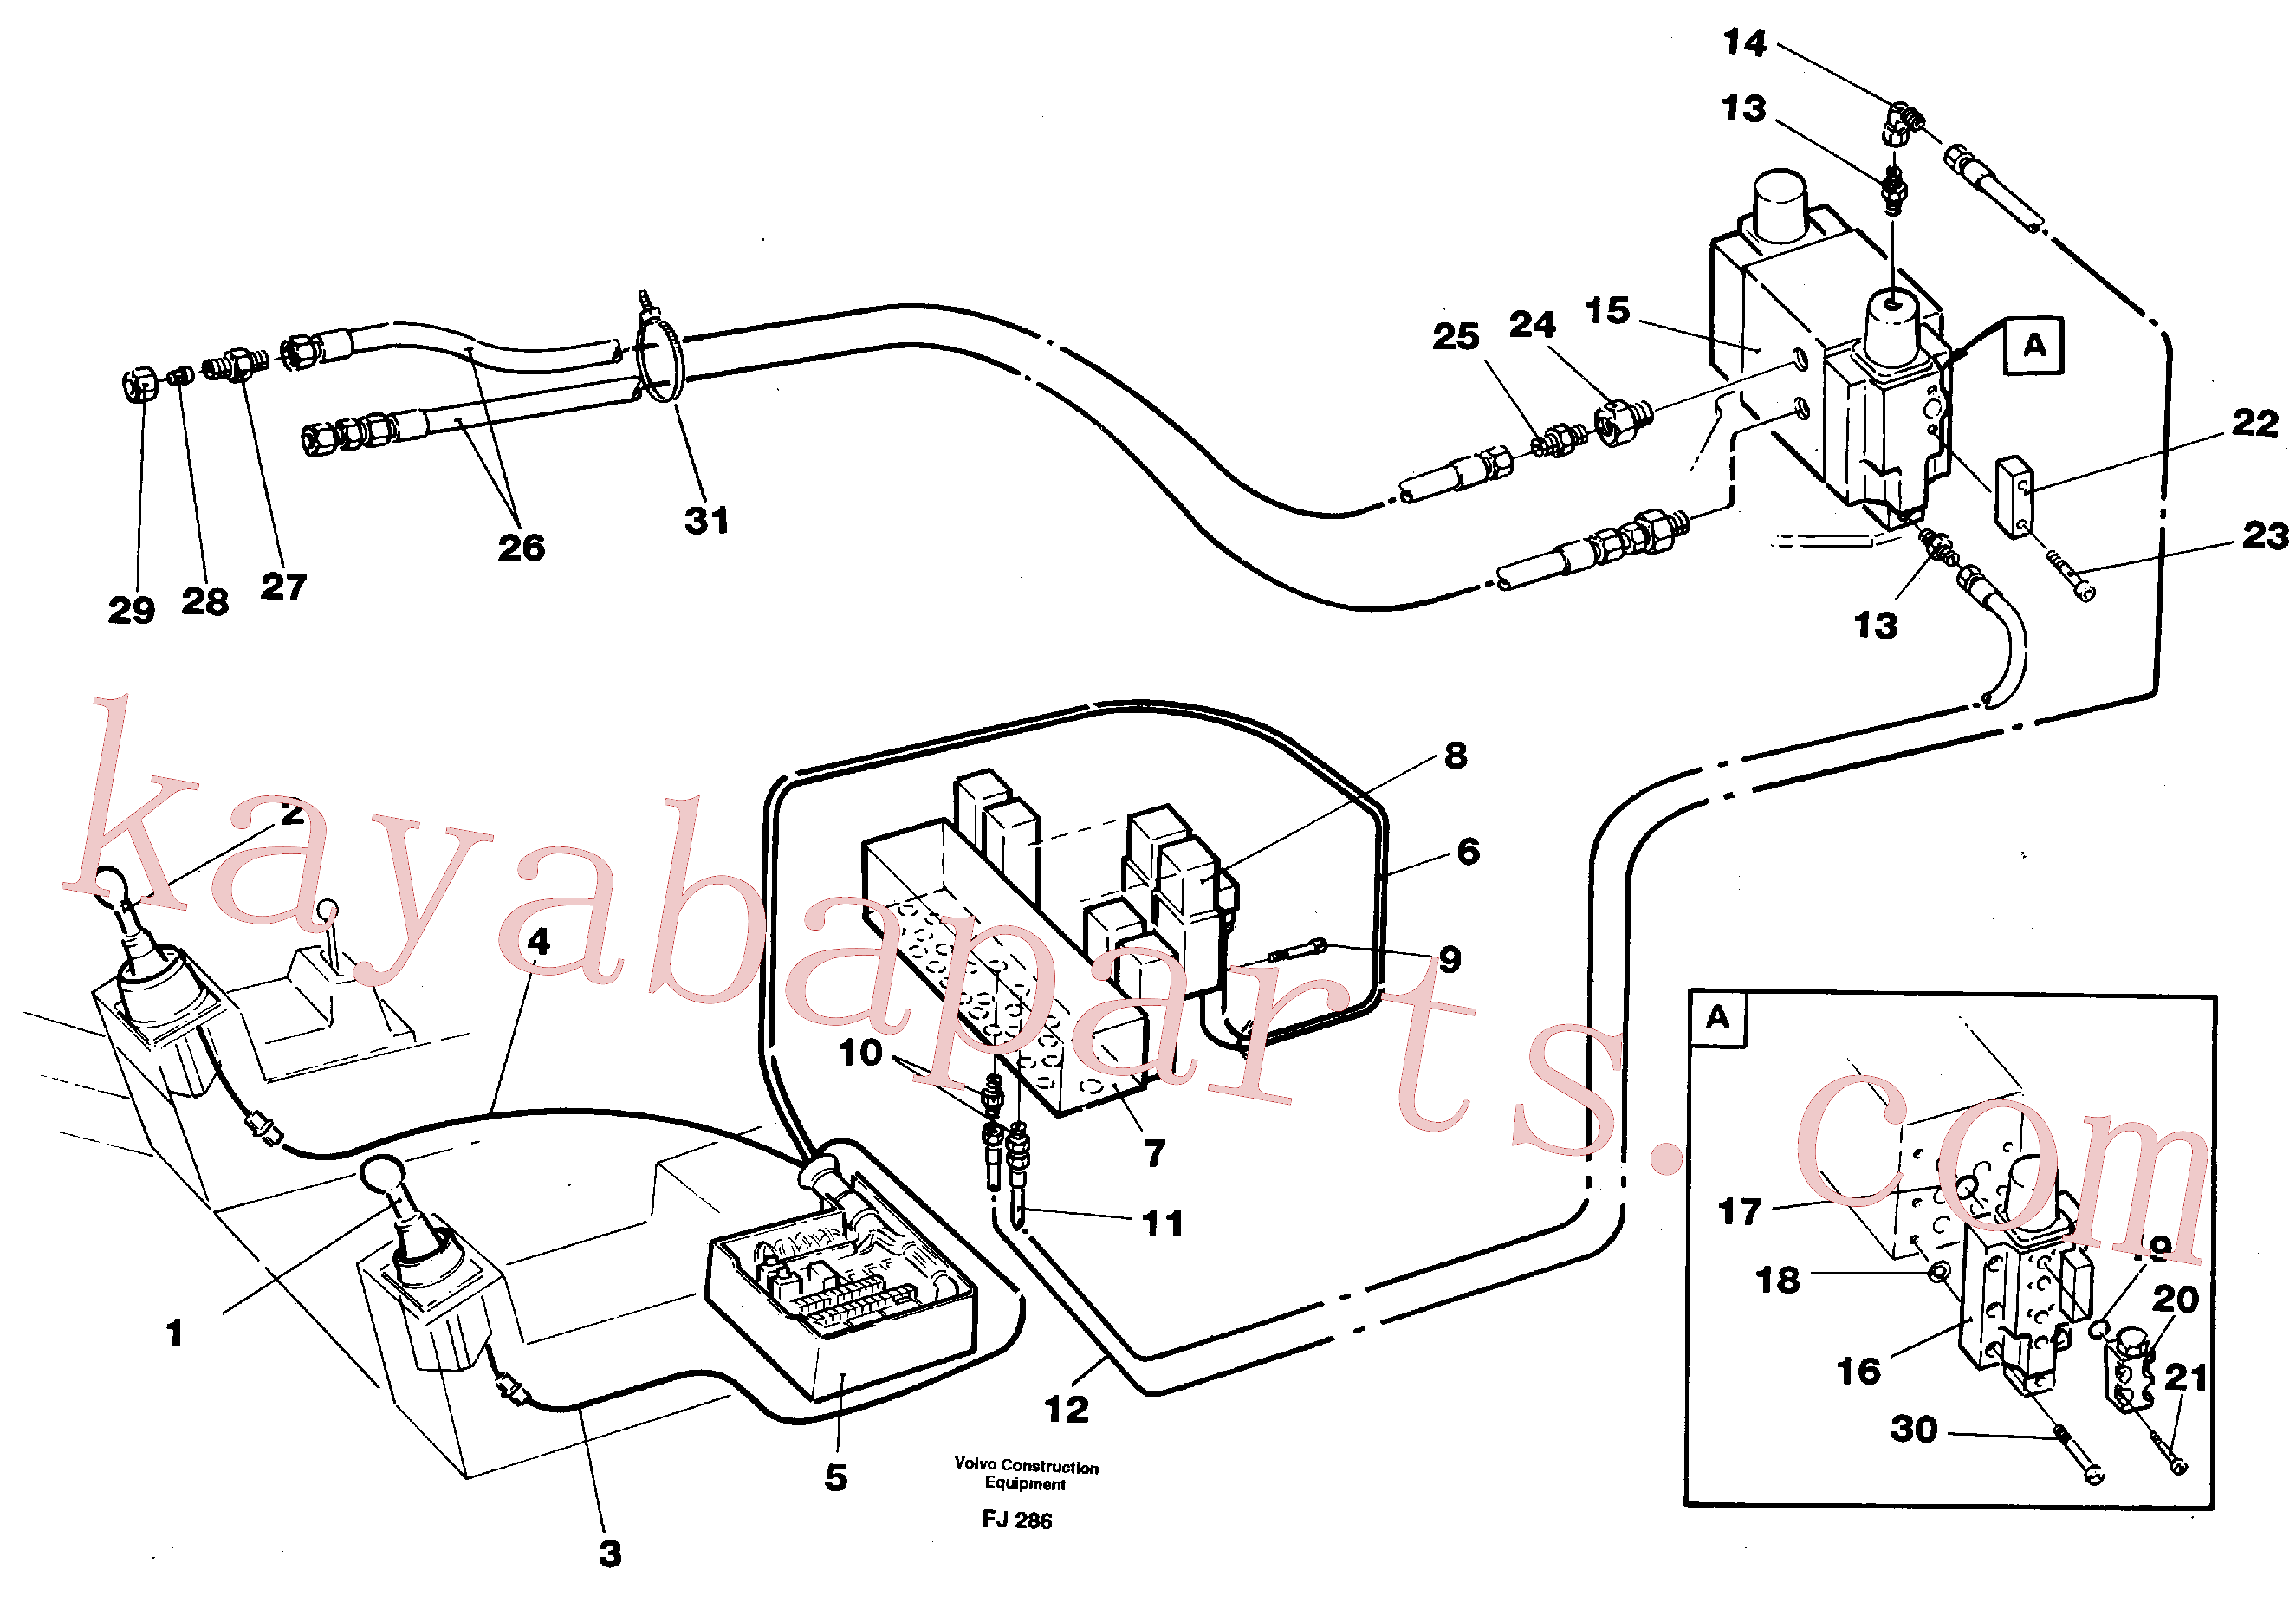 VOE14259603 for Volvo Button operated slope bucket/grab hydraulics onadj. boom.(FJ286 assembly)